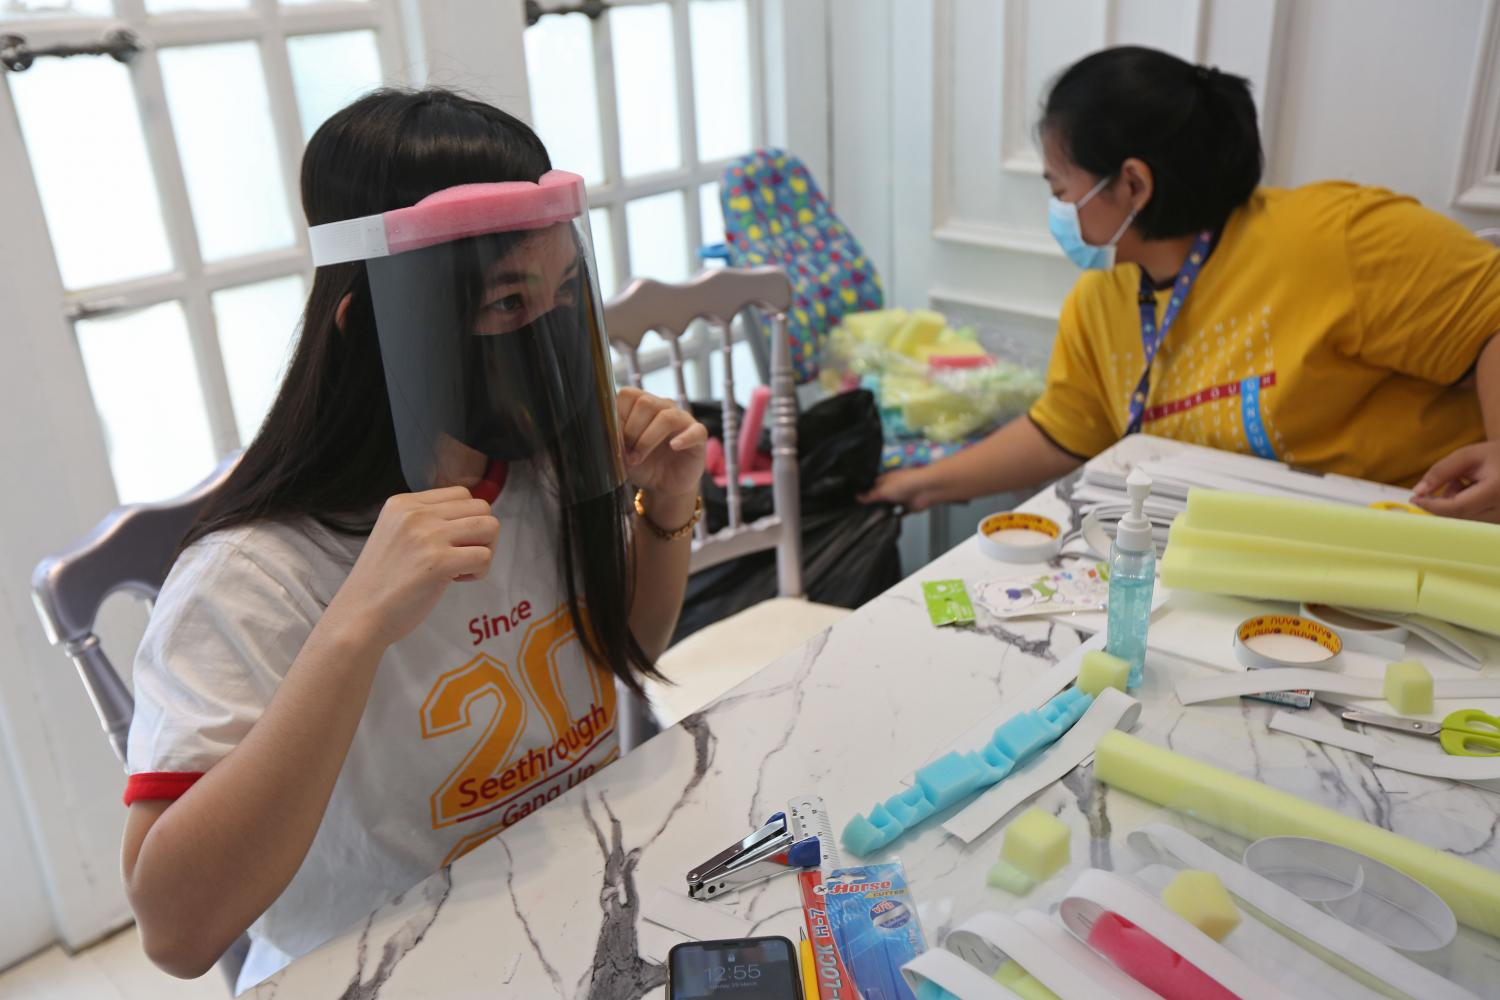 SAFETY GLASS: A young woman tests one of the face shields she produces at her home in Lat Phrao area of Bangkok. The shields will be donated to medical personnel at hospitals treating Covid-19 patients. photo:Varuth Hirunyatheb